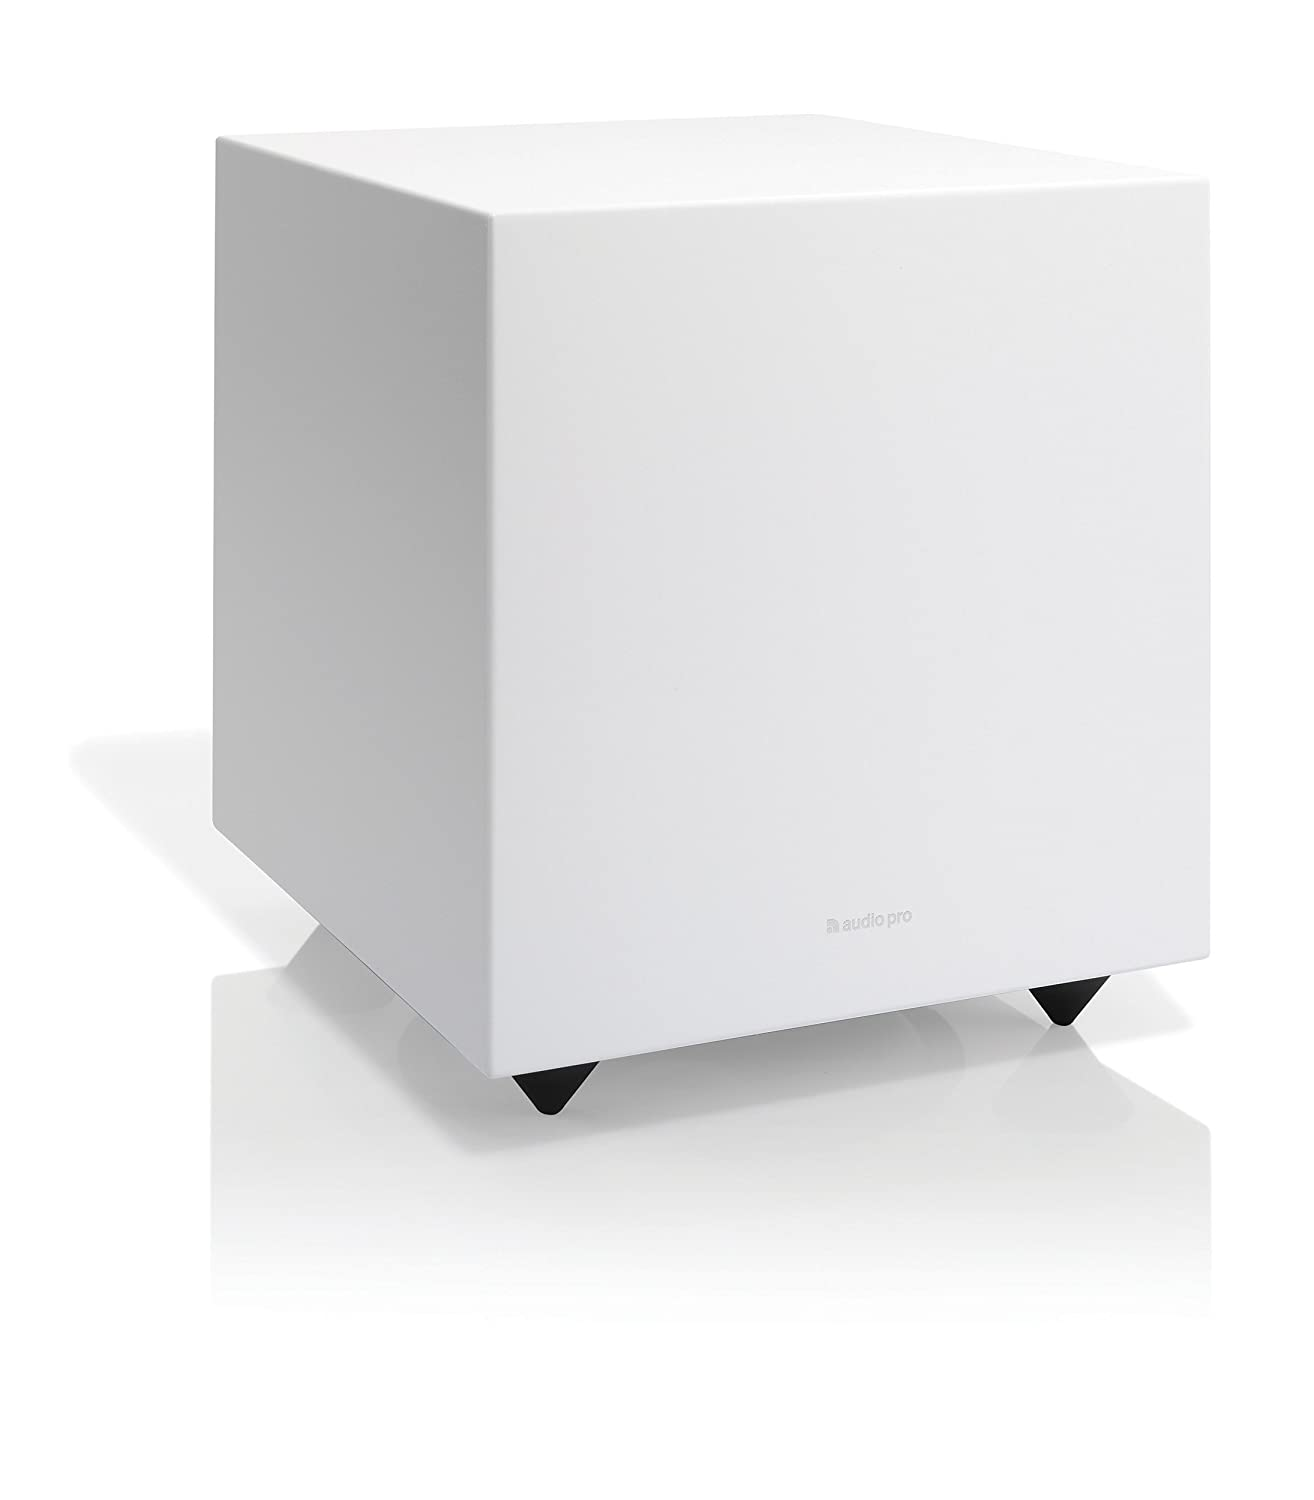 Audio Pro Addon Sub Home Theater Music Subwoofer Wired - Powerful Bass - White 7330117141413